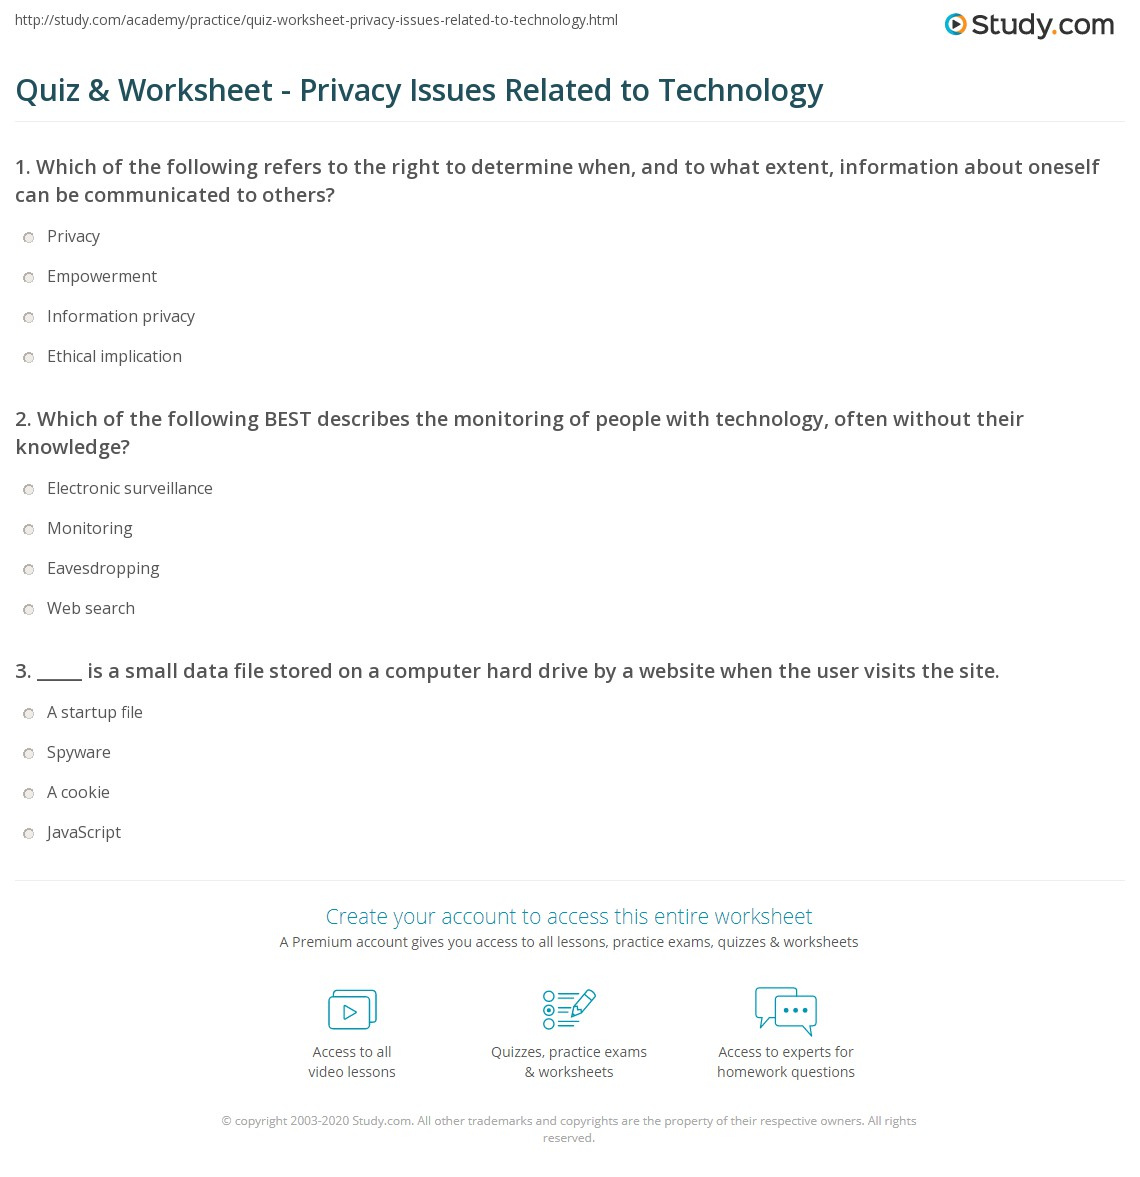 quiz worksheet privacy issues related to technology com print impact of technology on privacy worksheet